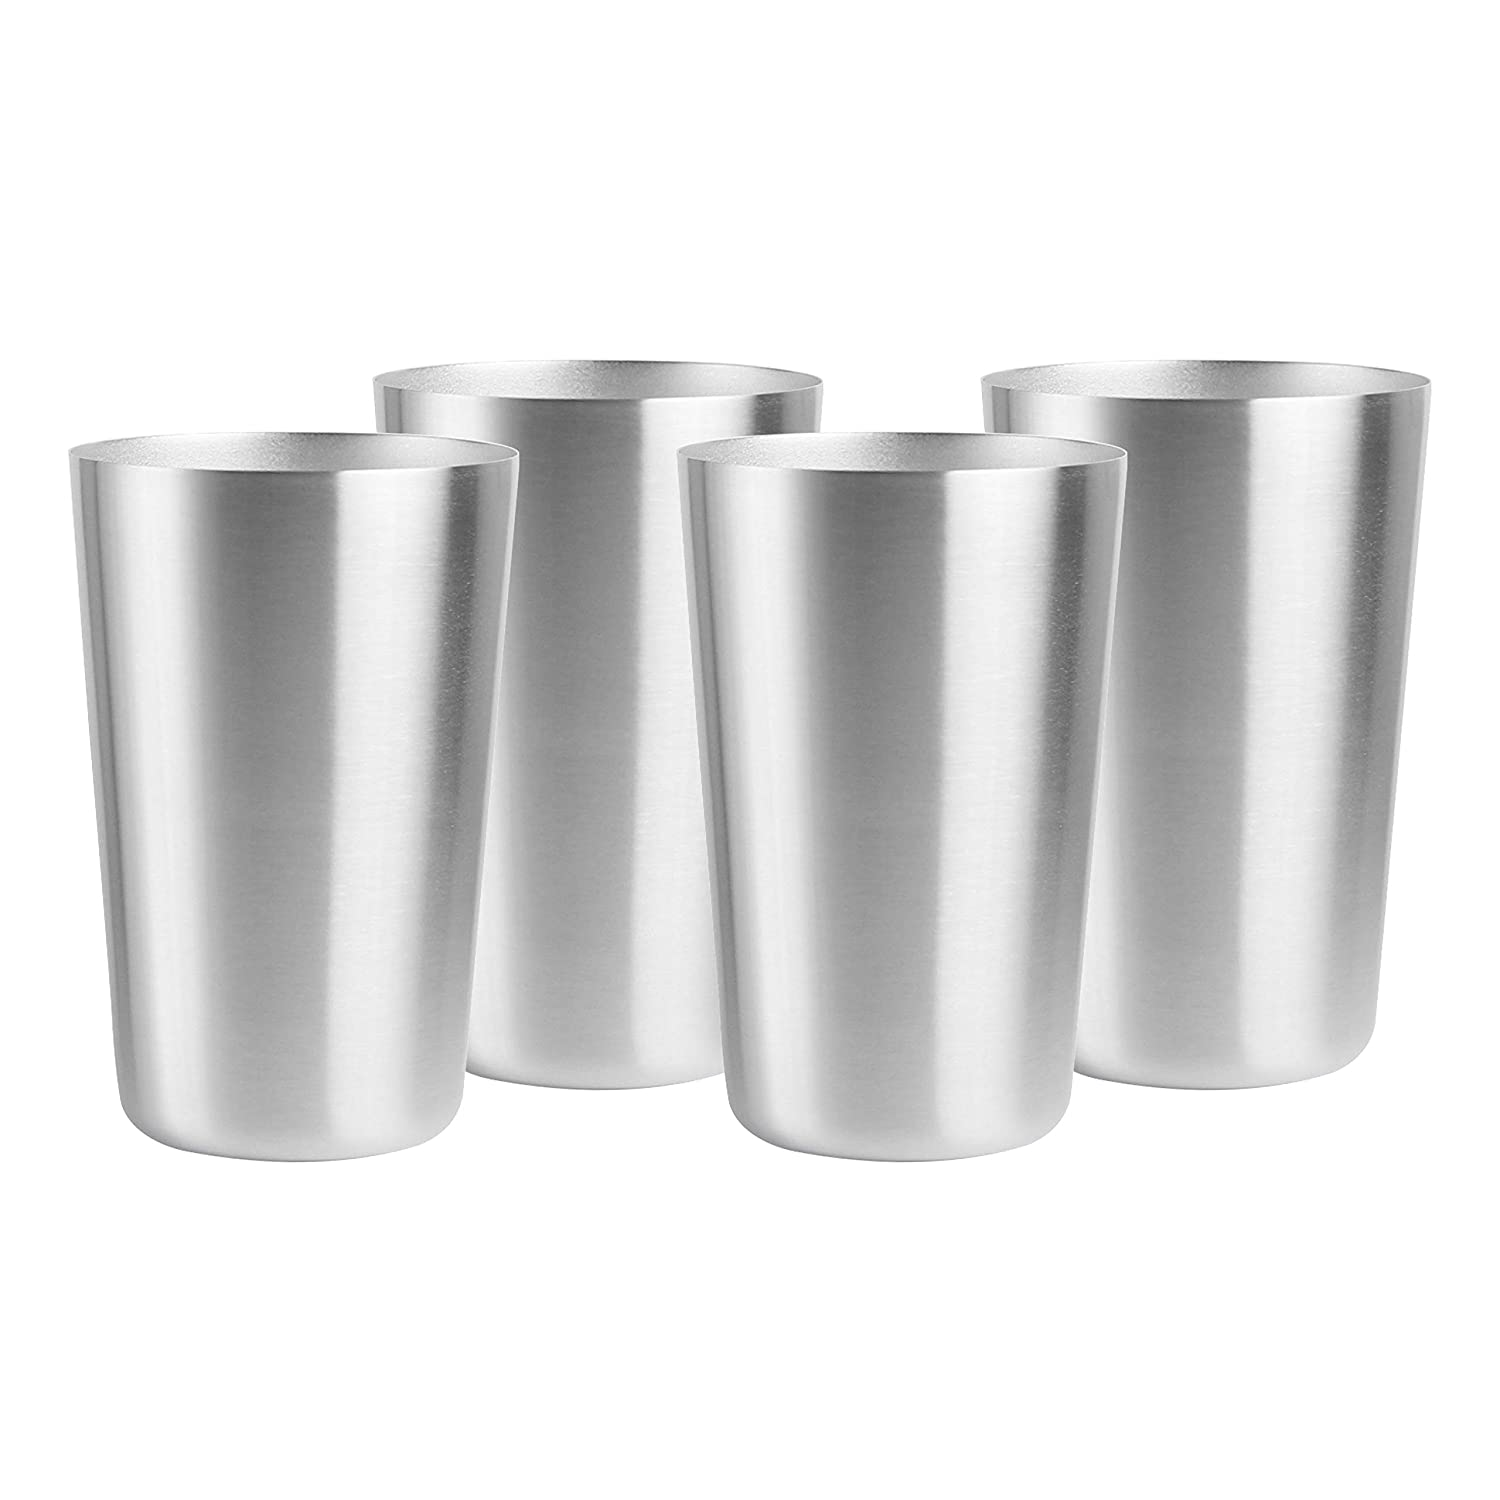 Pratico Kitchen Smooth Edge Stainless Steel Cups - Multi-purpose 16 oz Pint Glasses - 4 Pack SYNCHKG094319